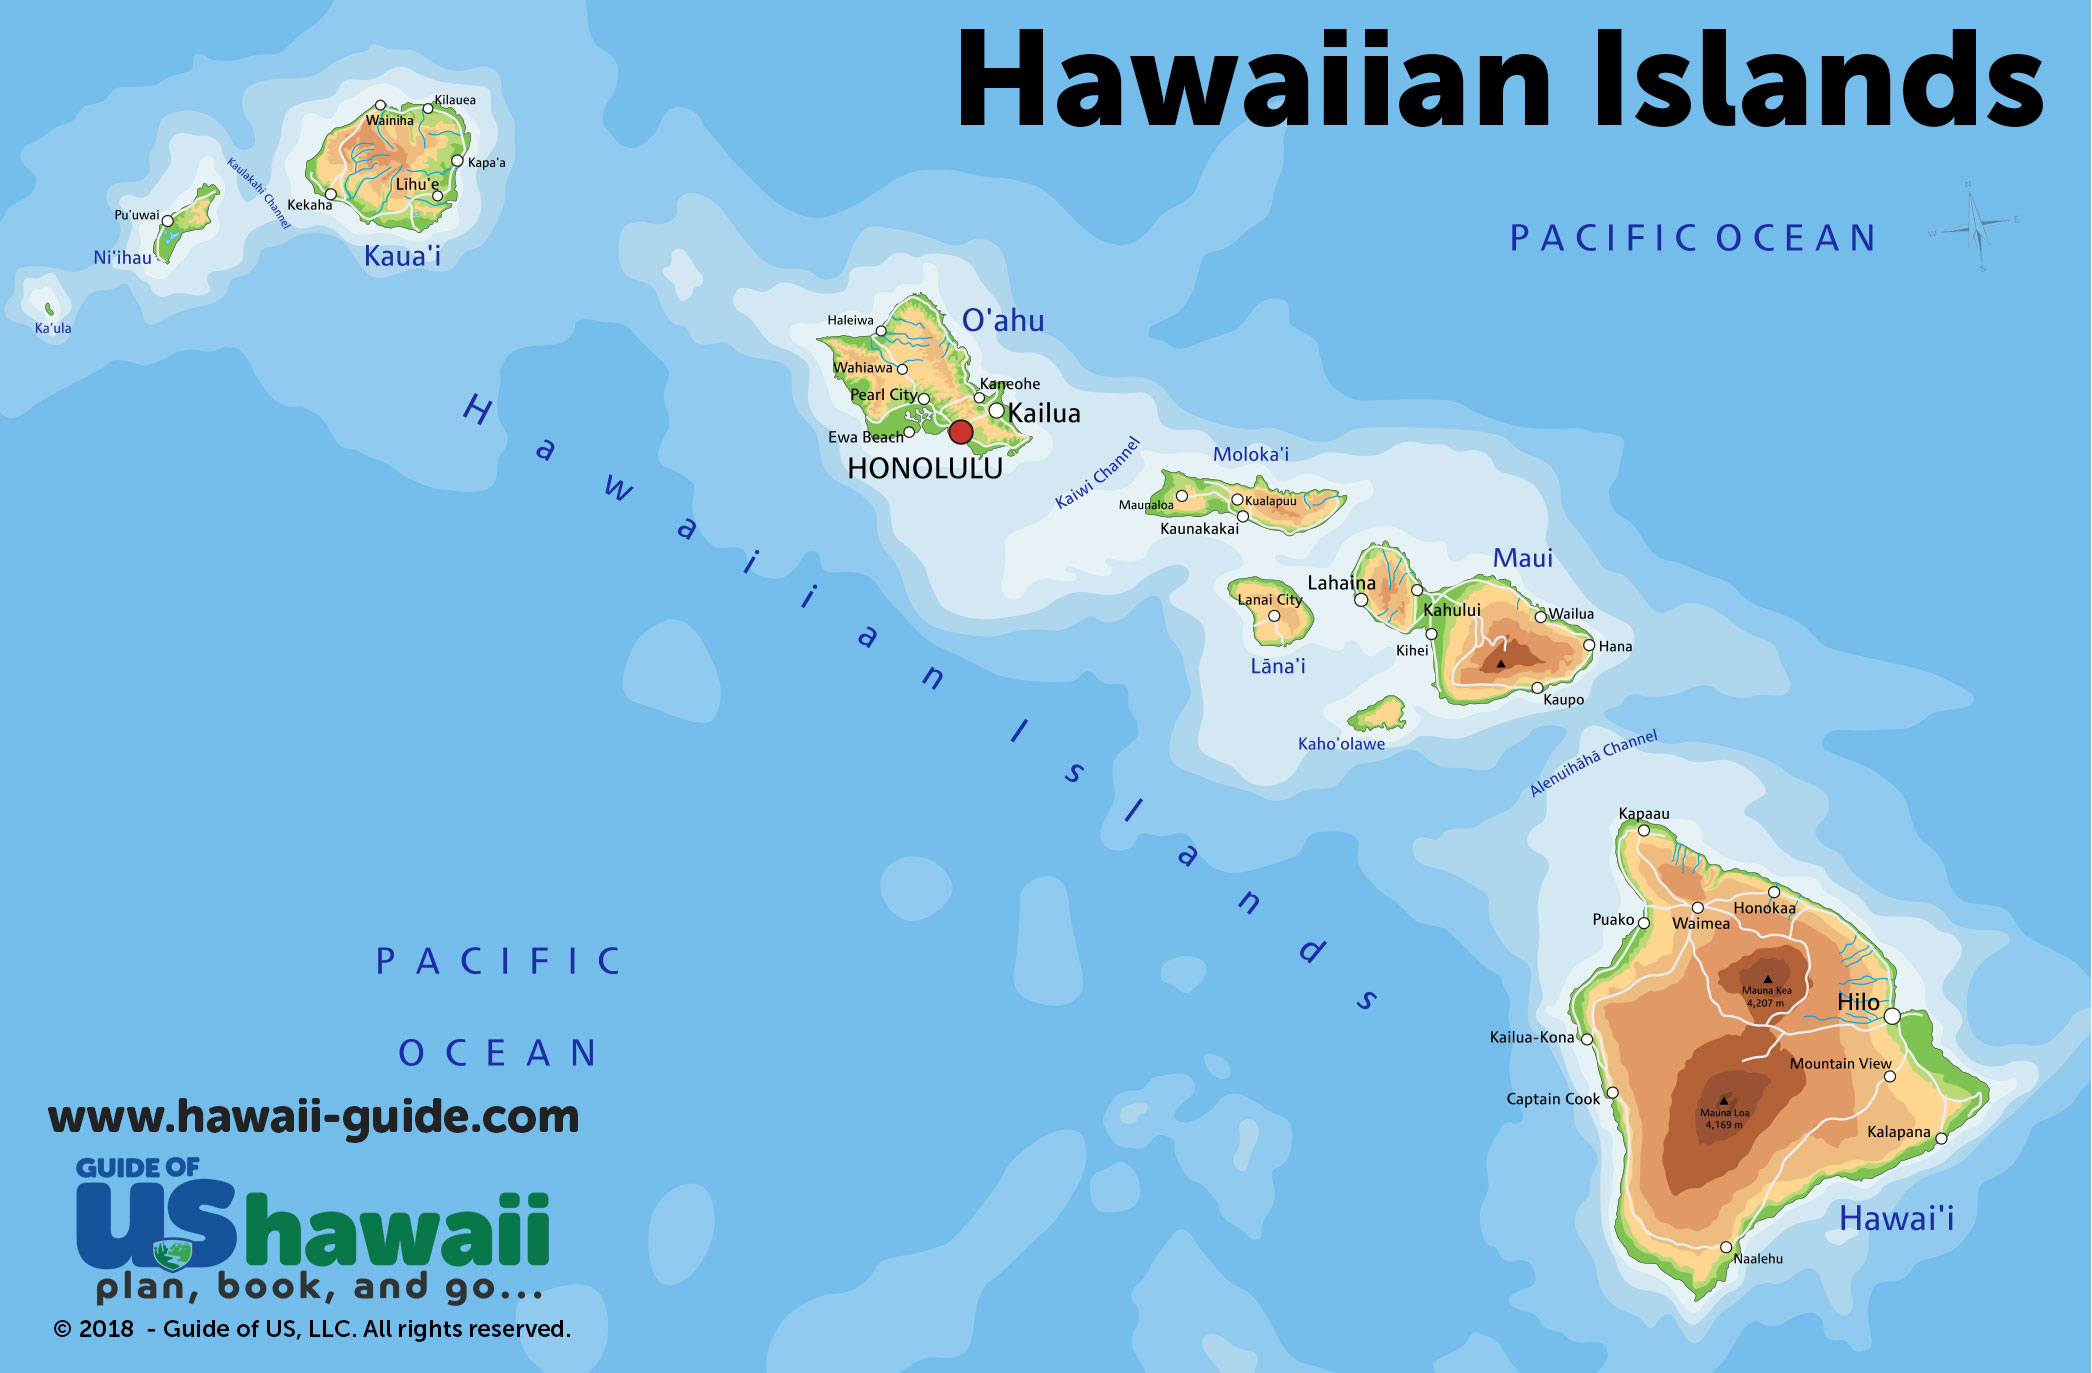 Hawaii On The Map Maps of Hawaii: Hawaiian Islands Map